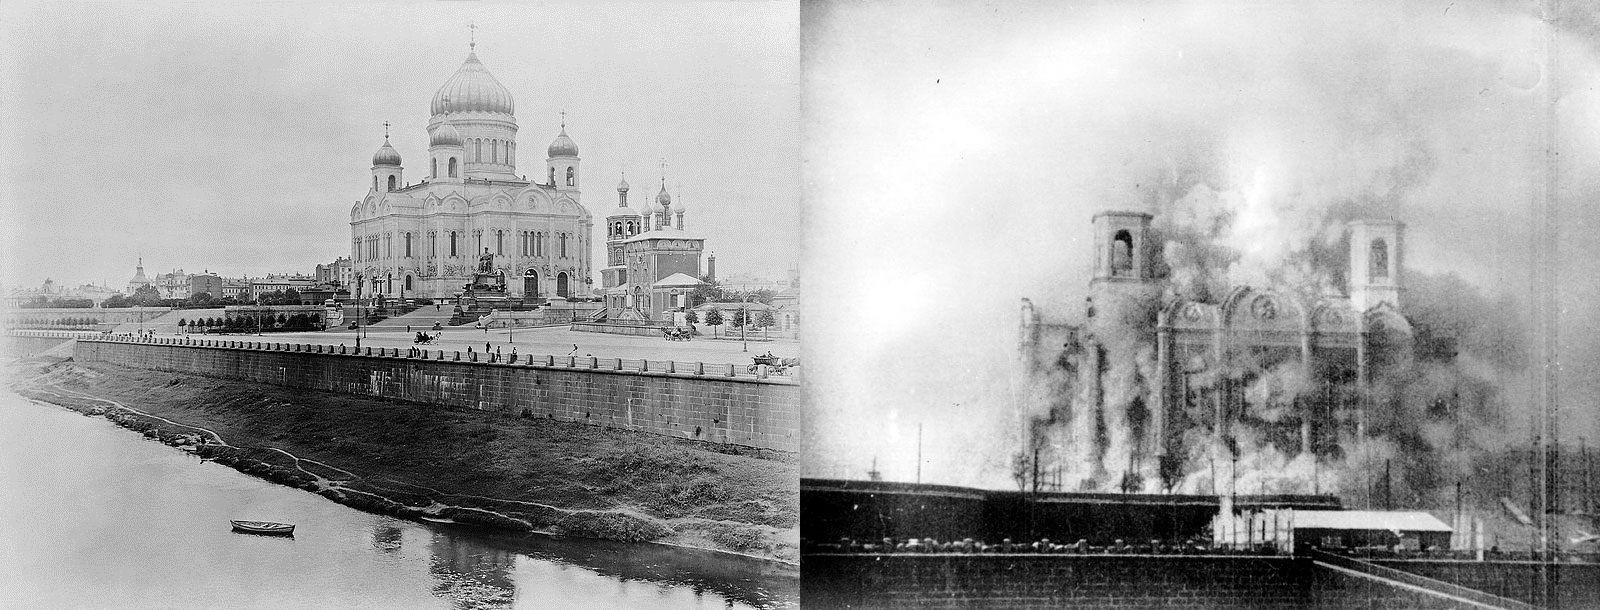 Today History Cathedral of Christ the Saviour in Moscow was destroyed by an  order of Joseph Stalin 1931 | Today in history, Russia, Russia news